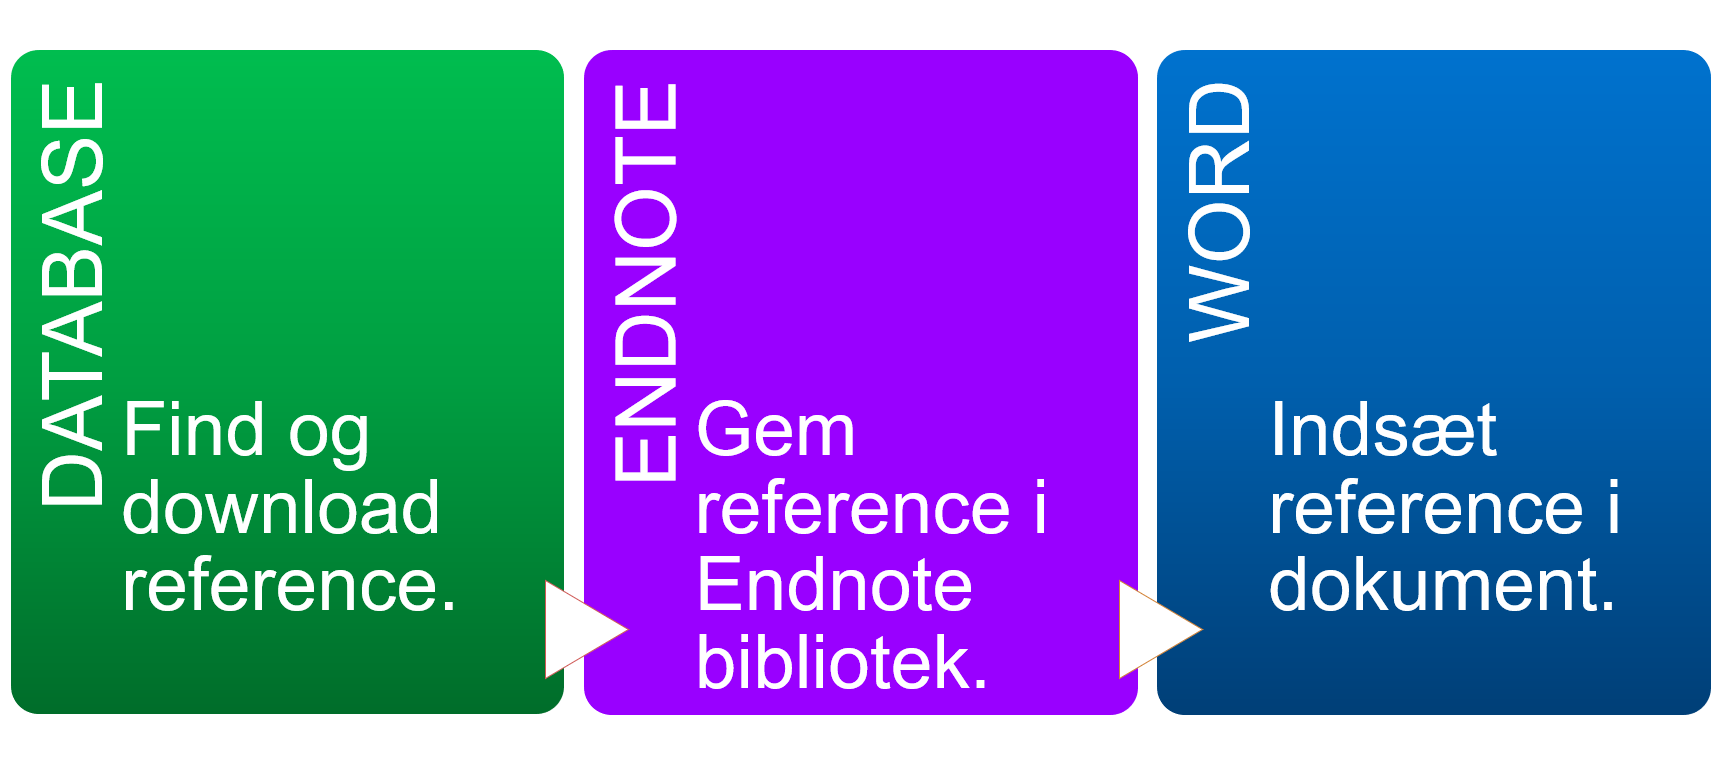 endnote2